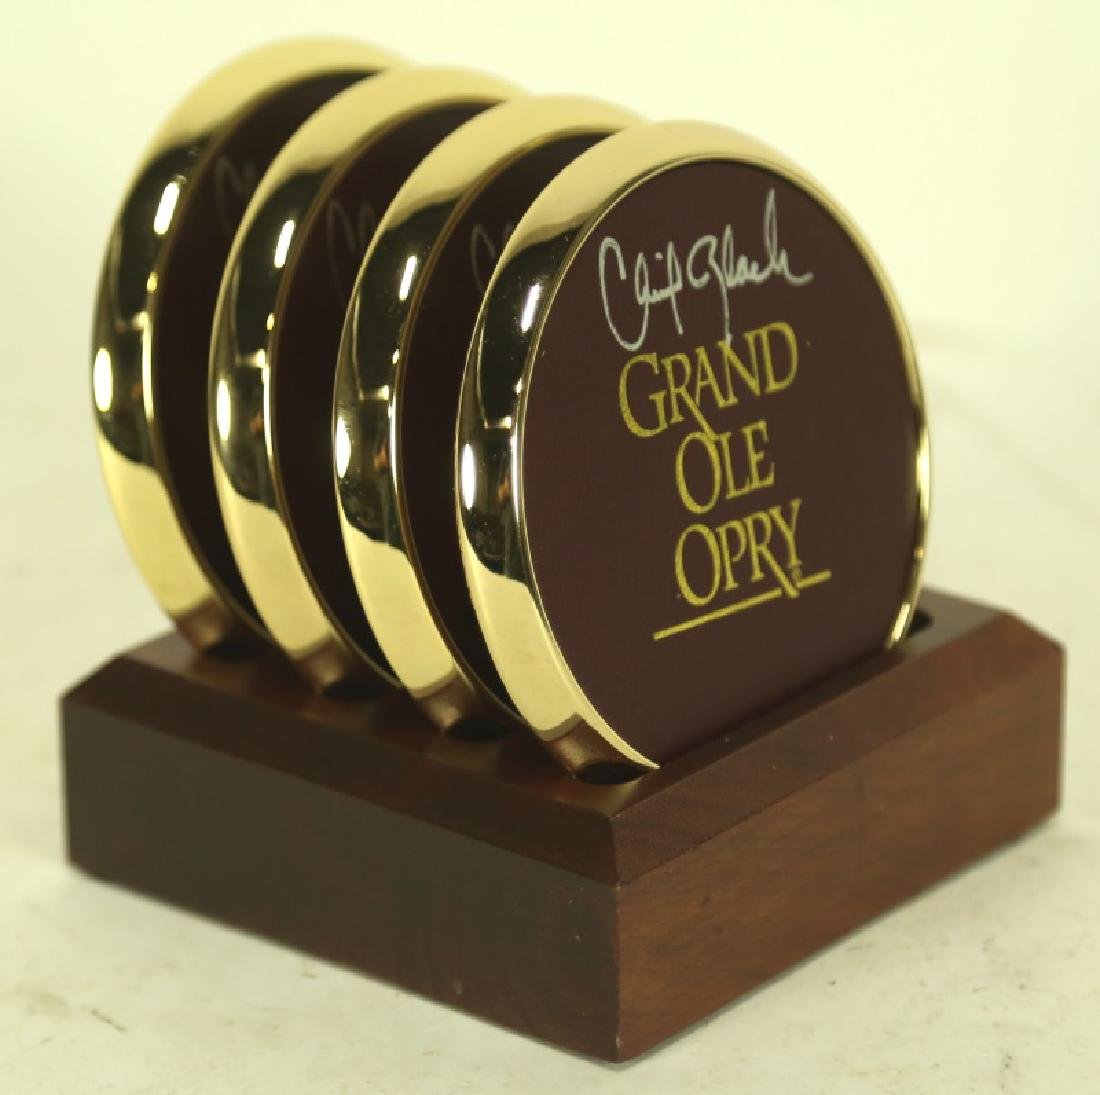 GRAND OLE OPRY AUTOGRAPHED COASTERS